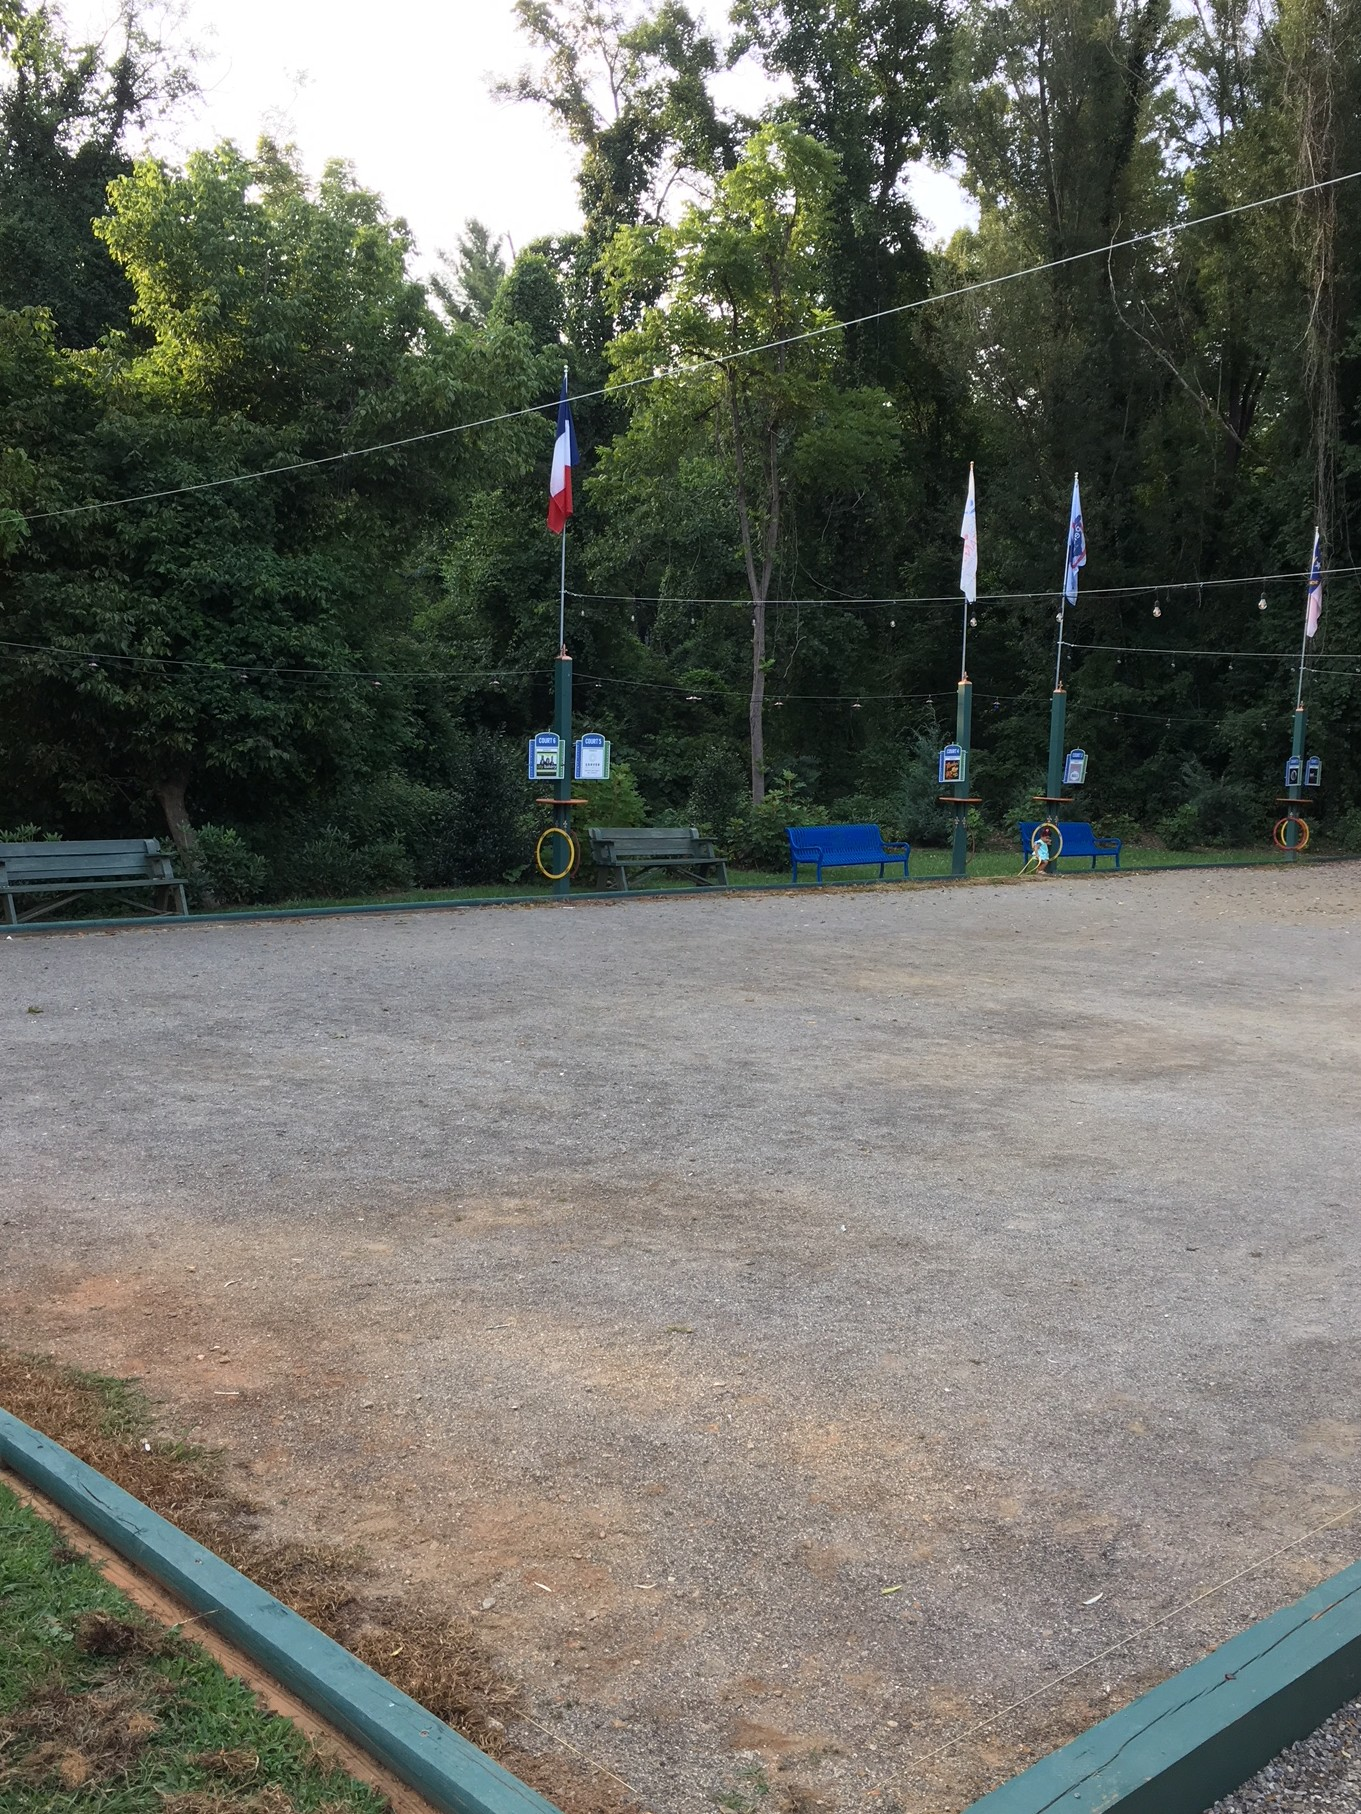 Petanque courts at Rendezvous